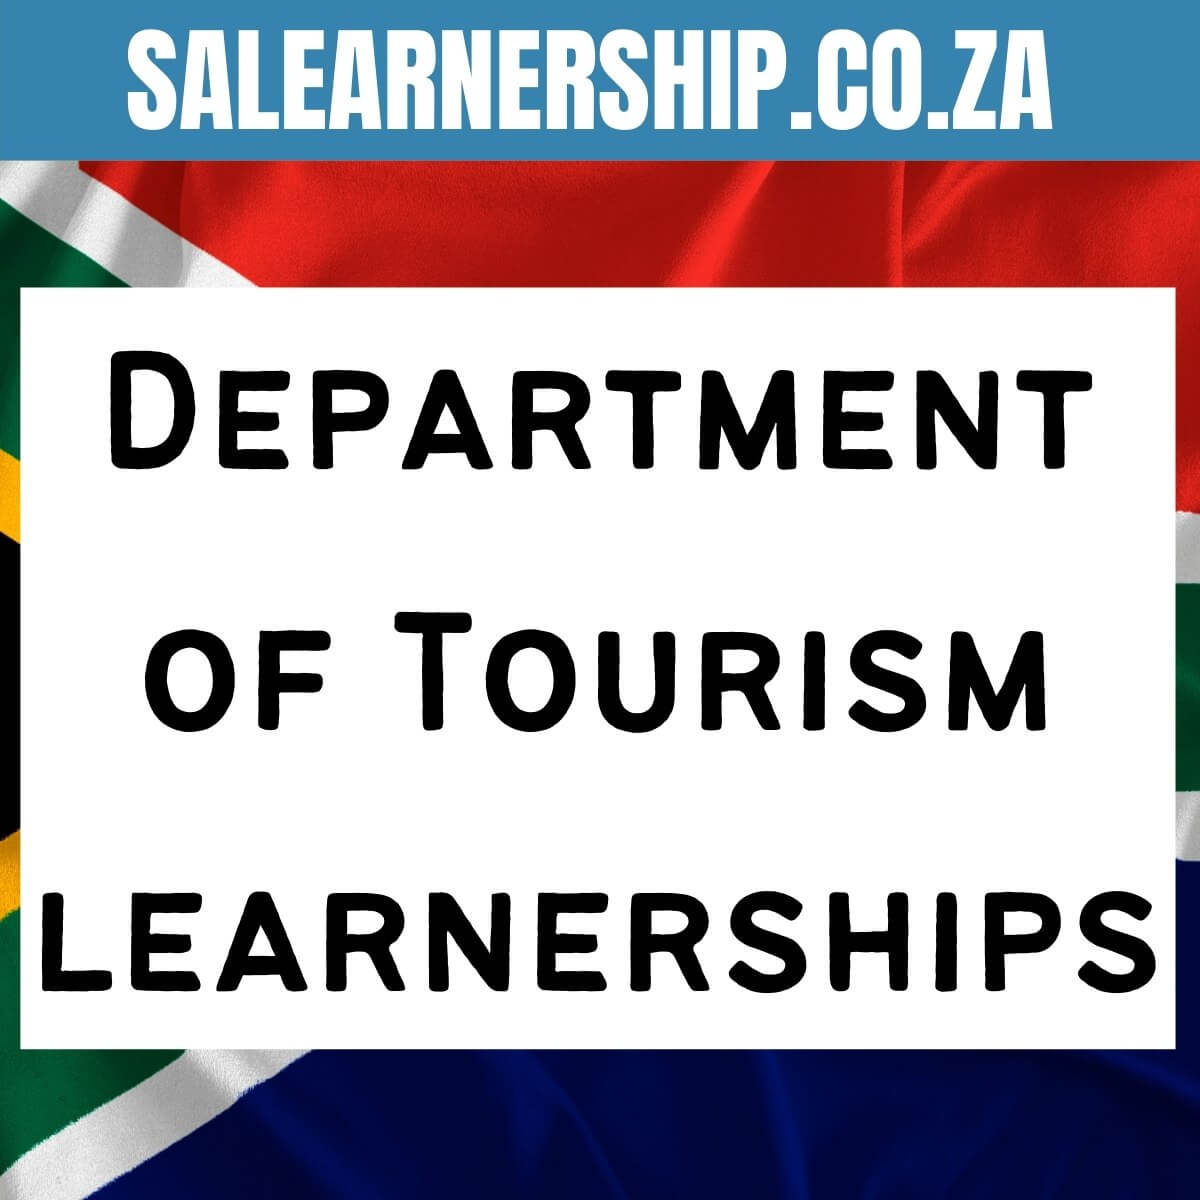 Department of Tourism learnerships